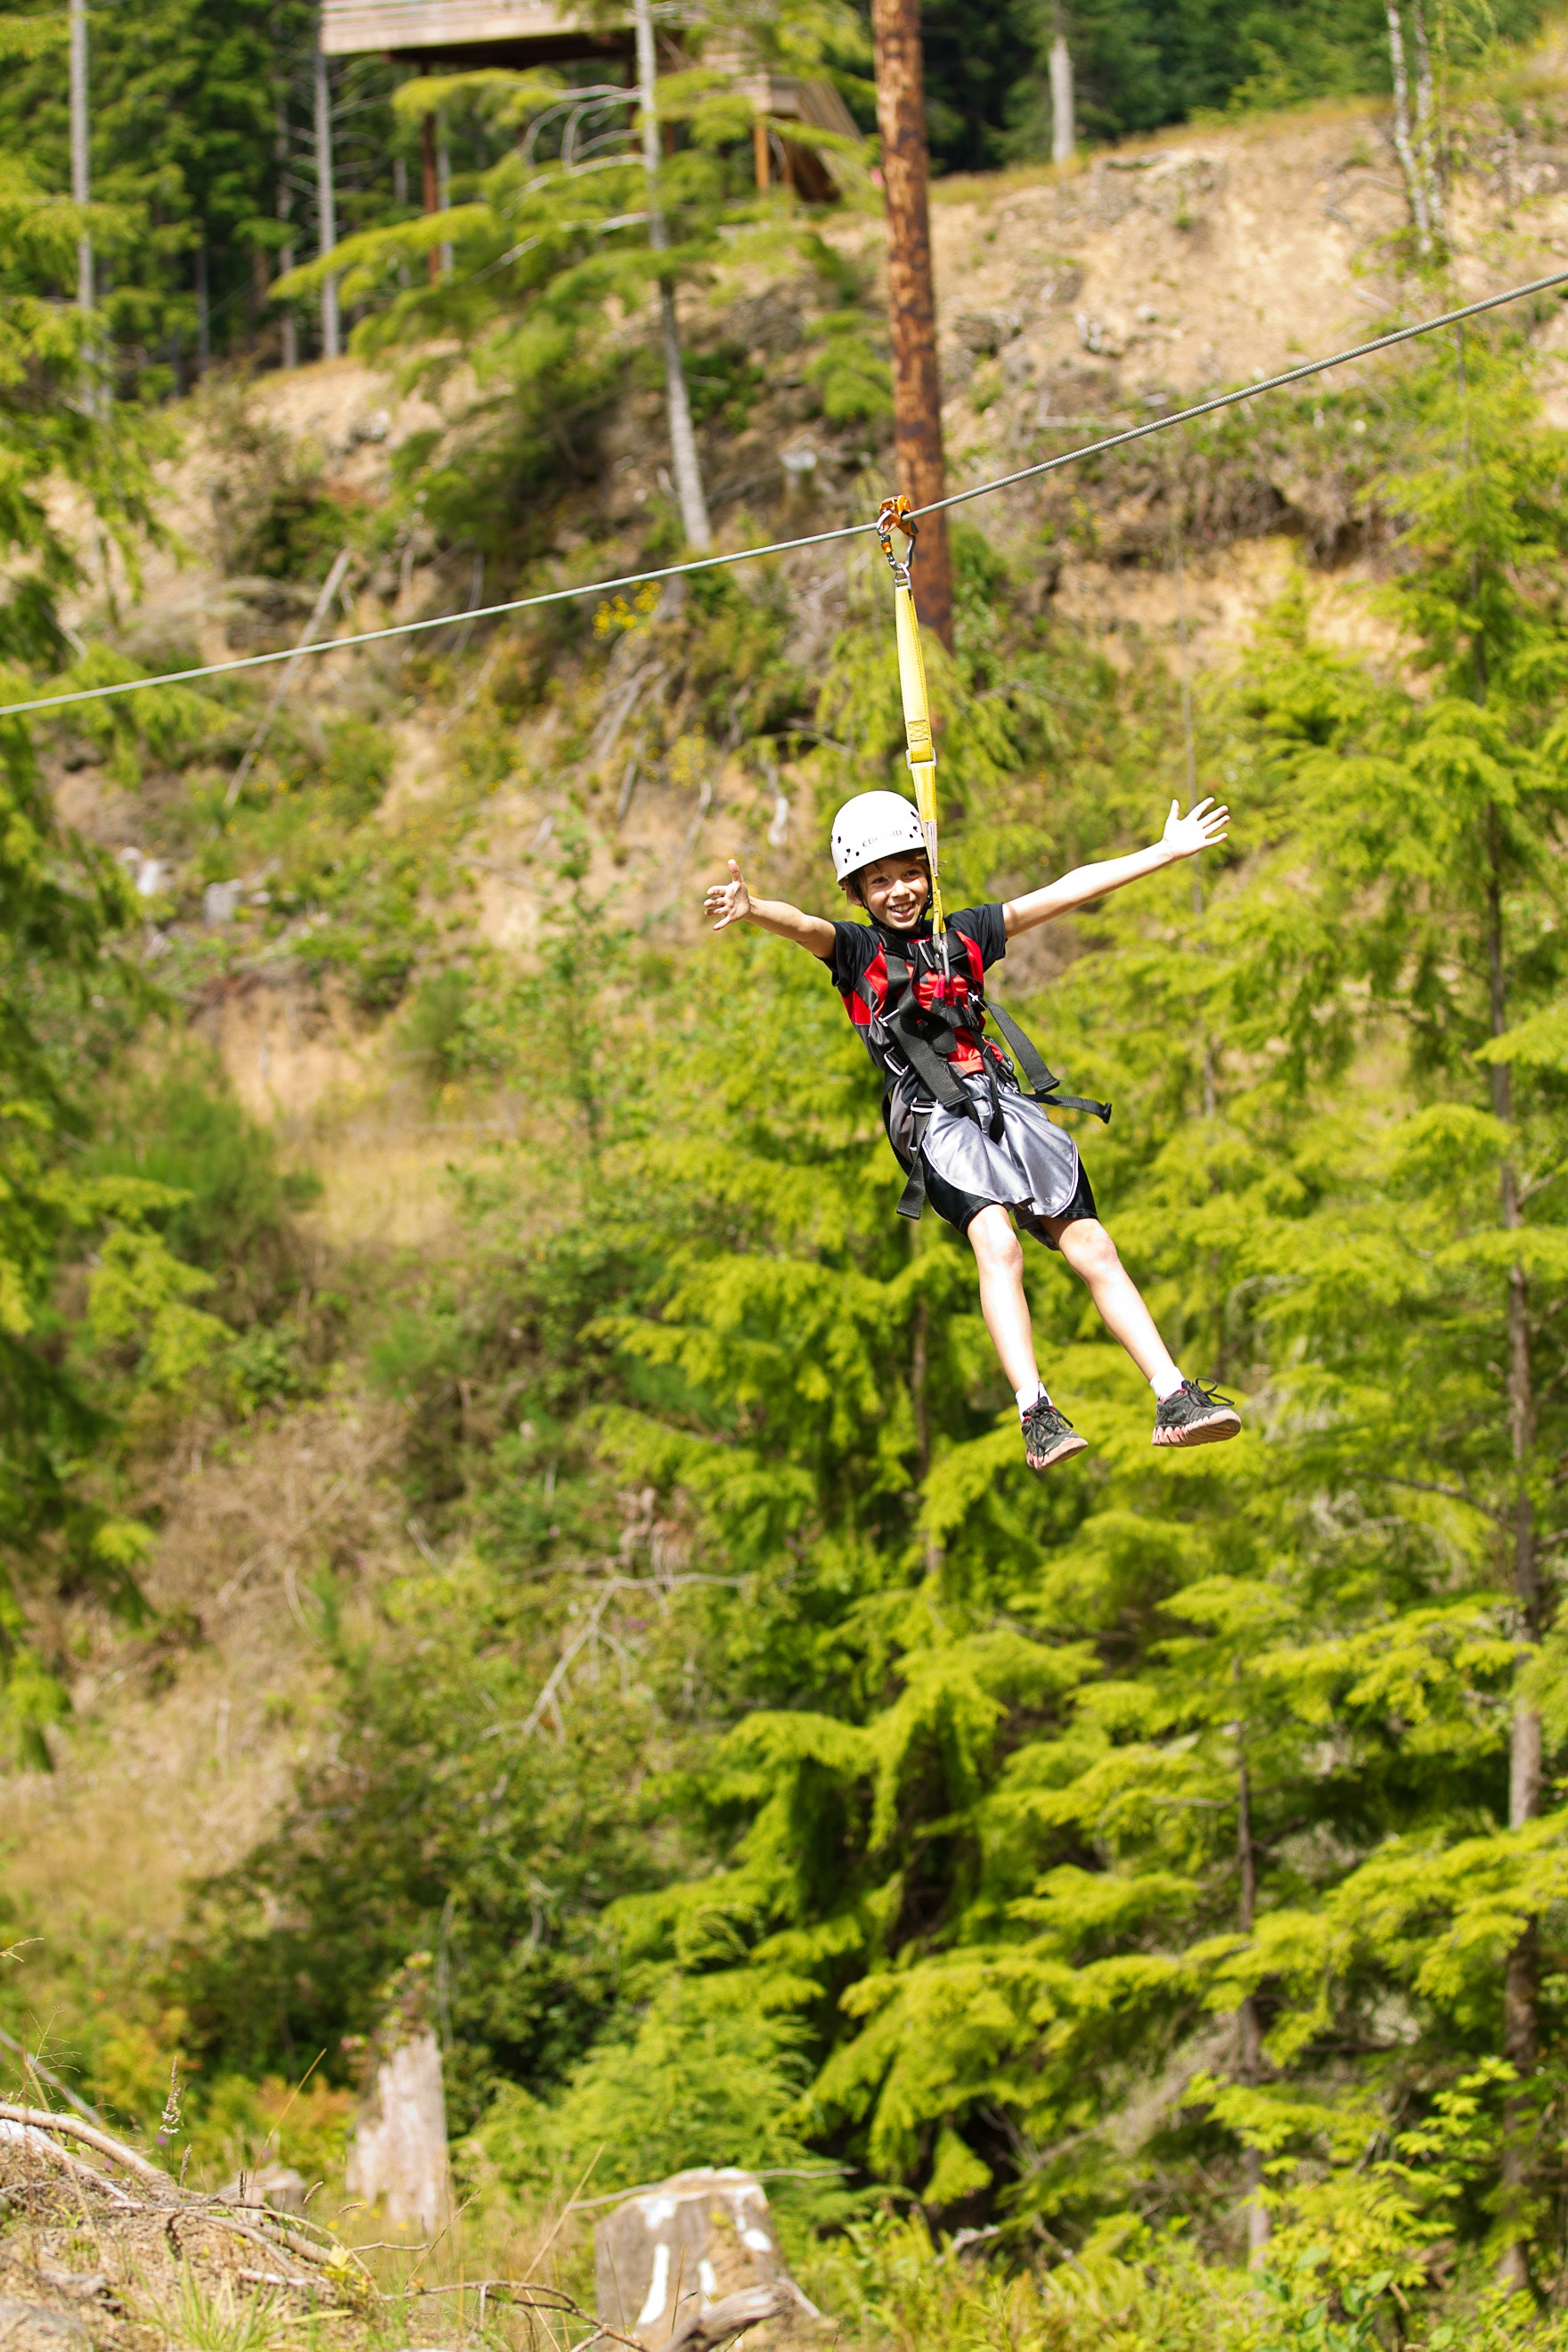 A boy ziplines with her arms outstretched